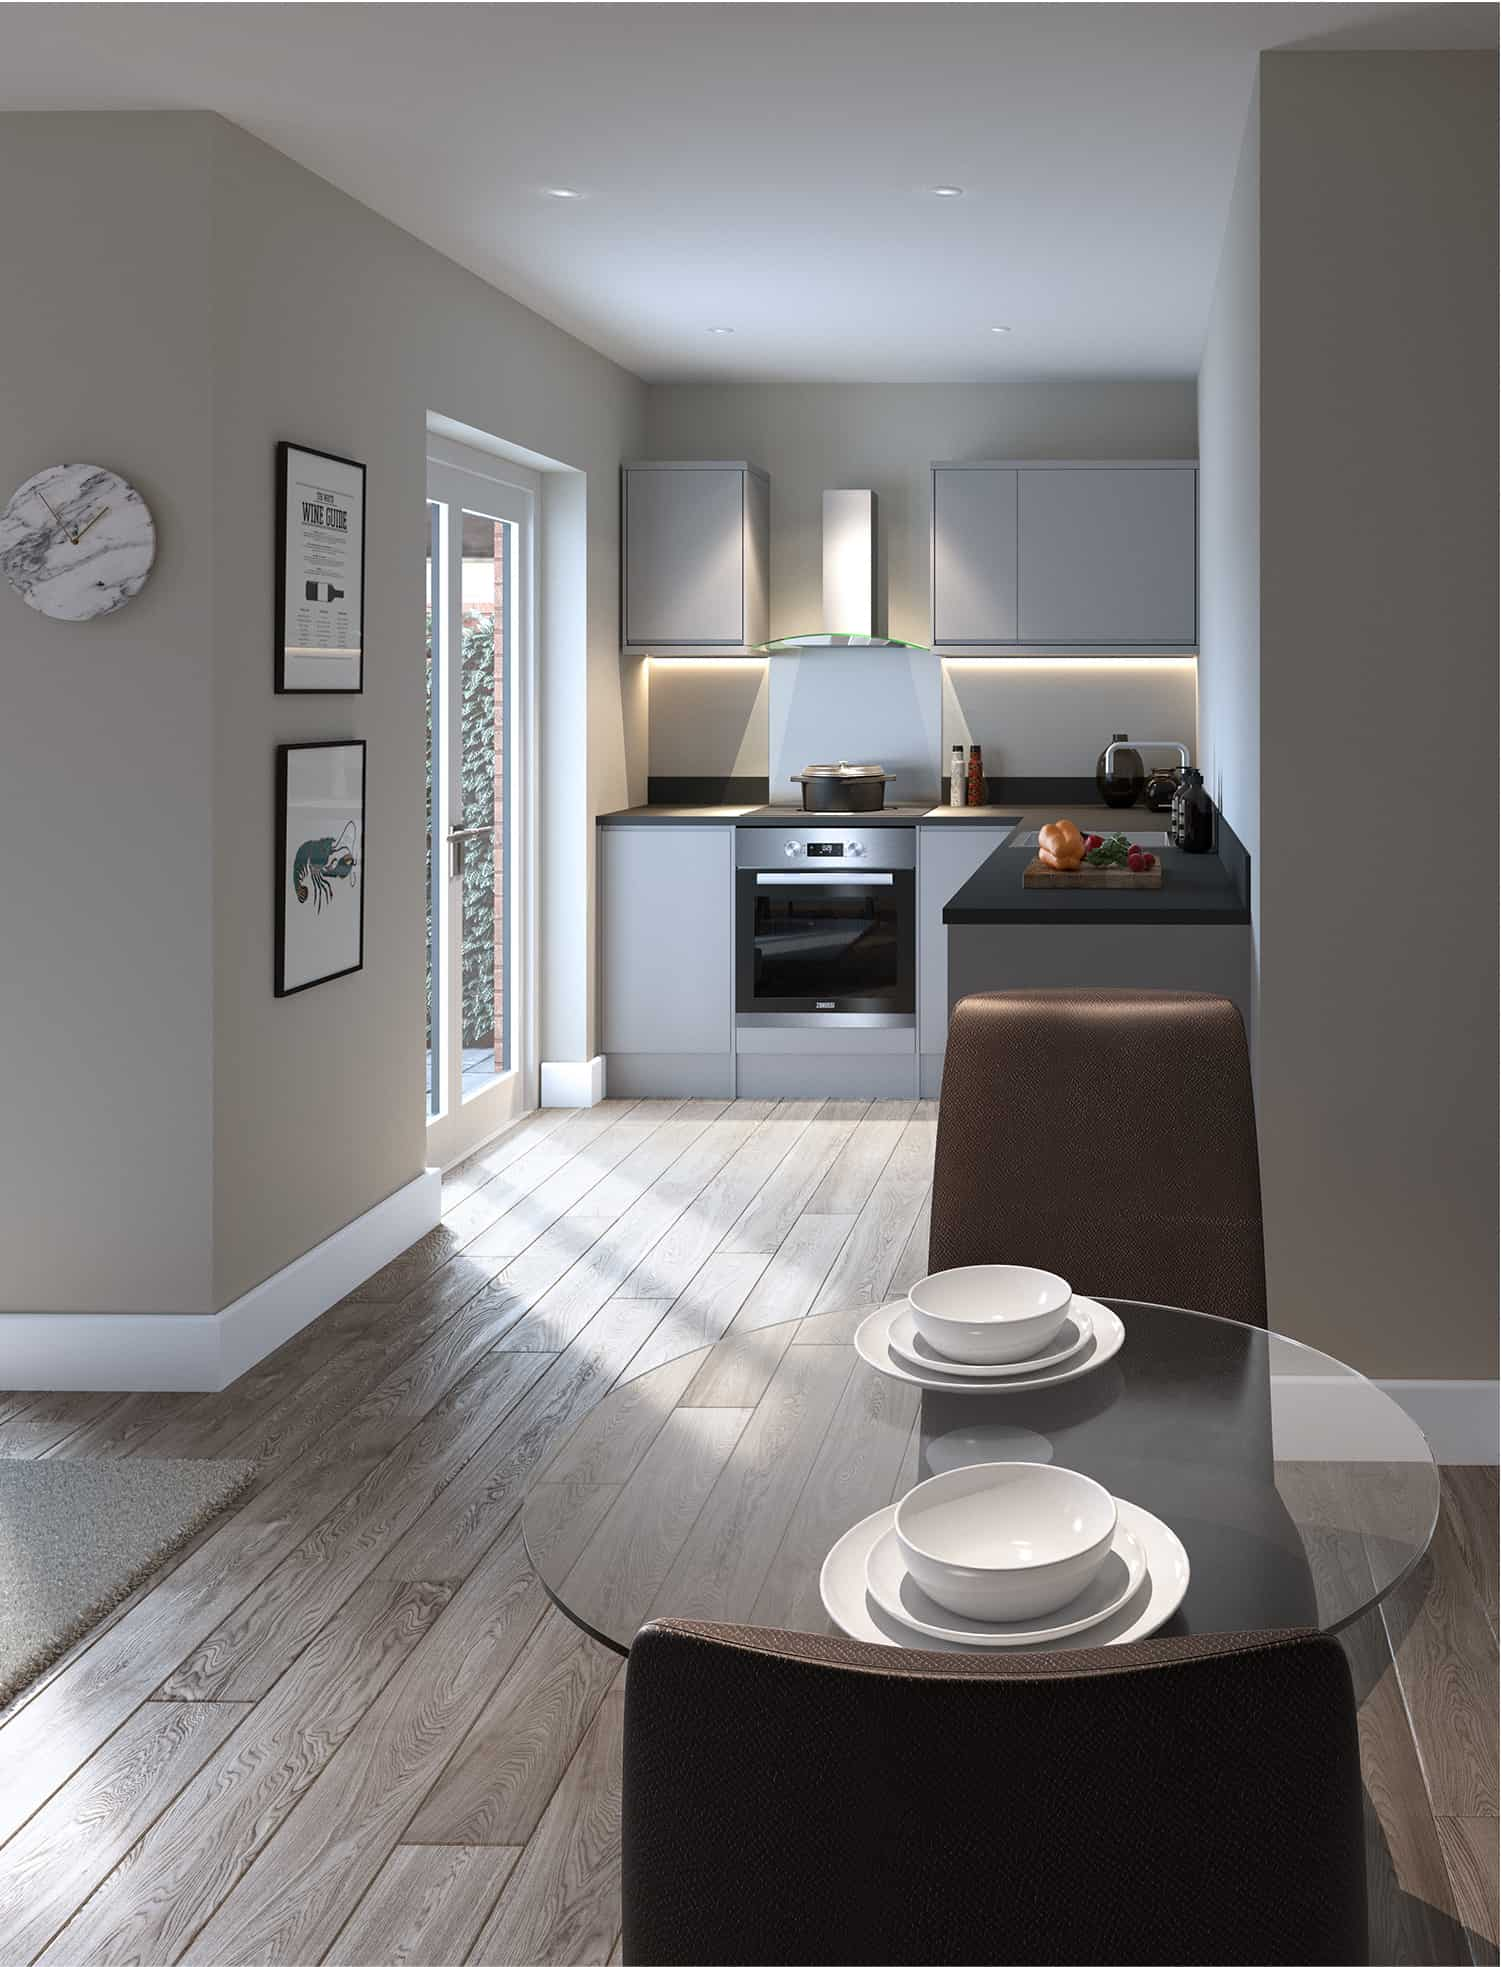 St Pancras CGI Image Interior Commercial to Residential Property Conversion Apartment